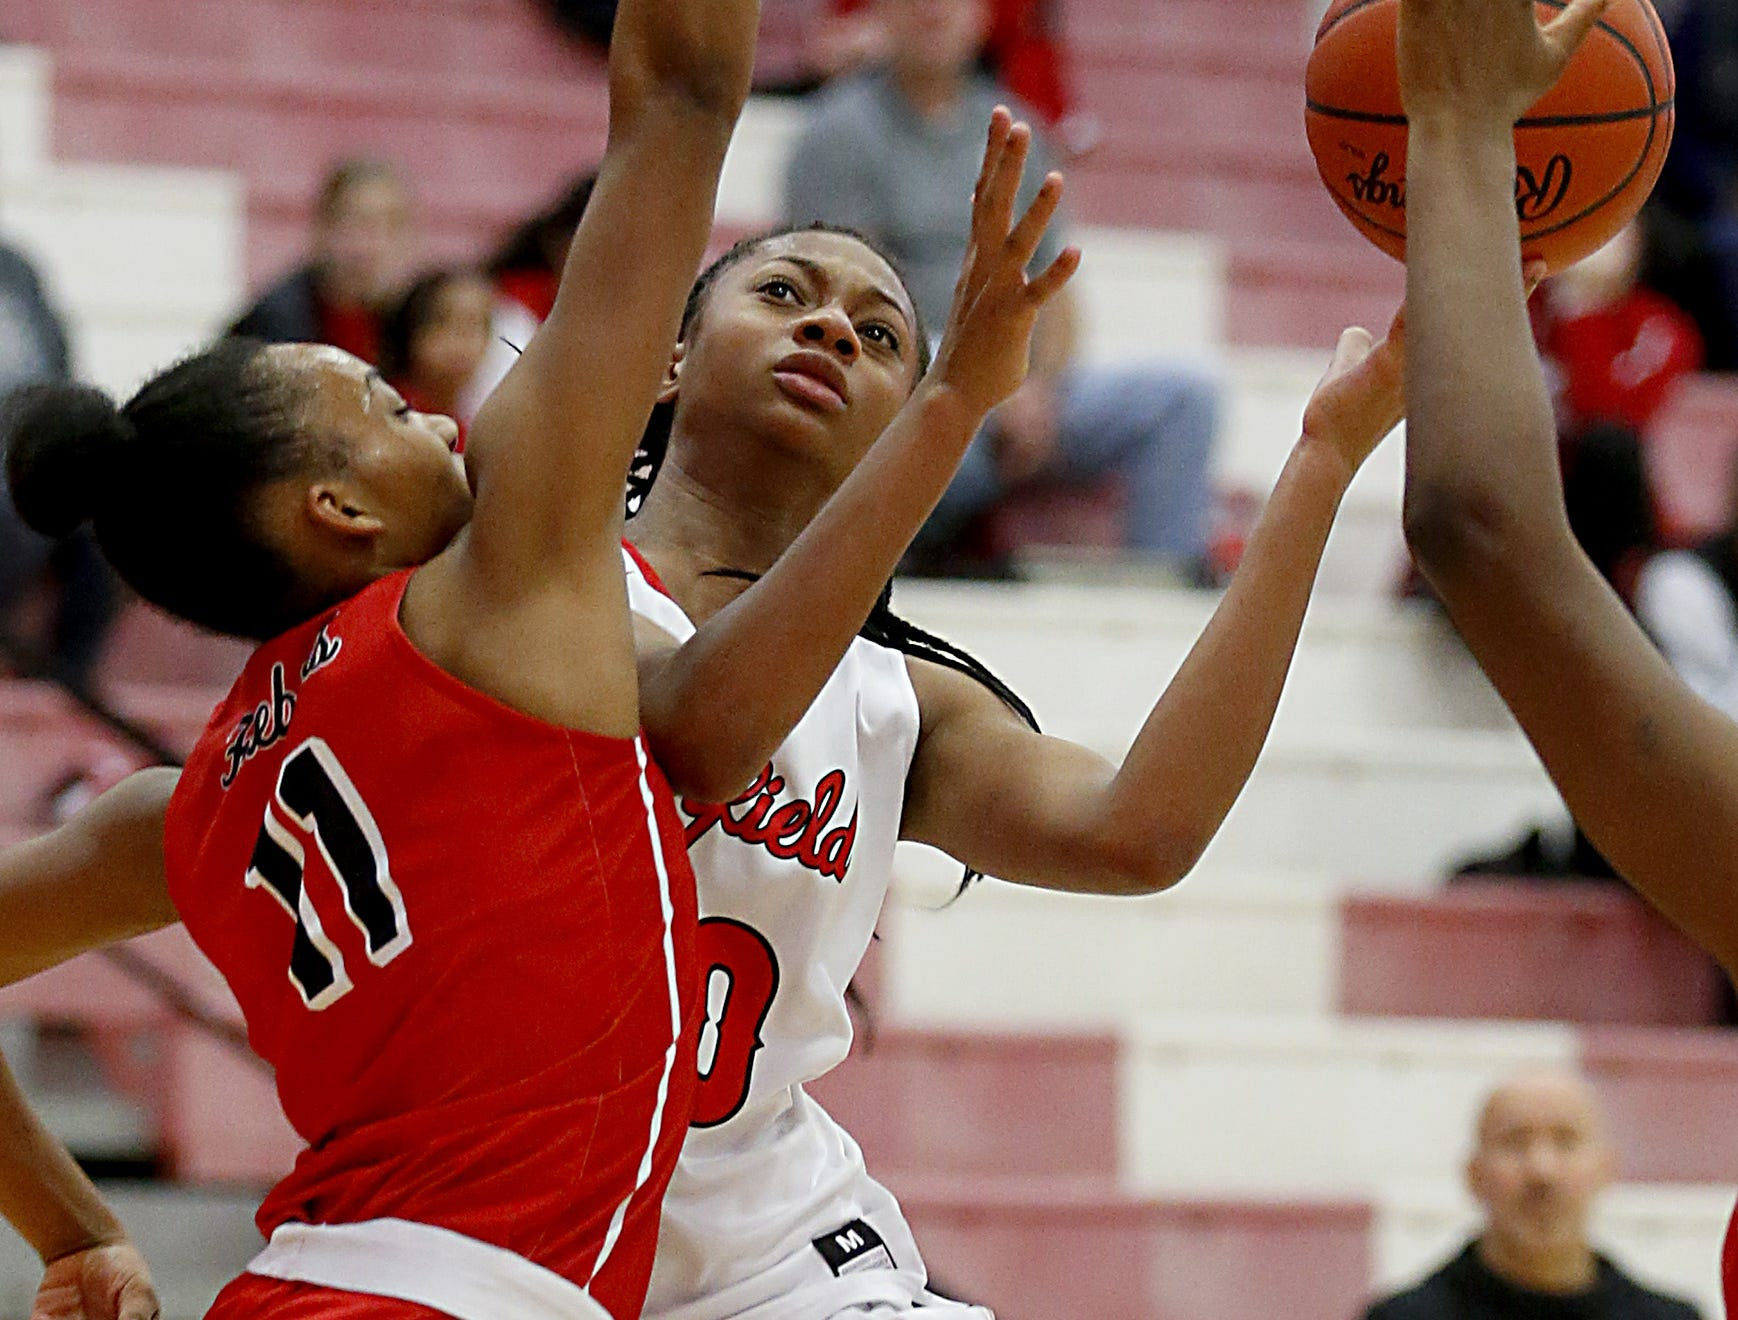 Fairfield forward Tori Williams shoots while defended by Lakota West's Dominique Camp during their game at Fairfield Saturday, Dec. 1, 2018.